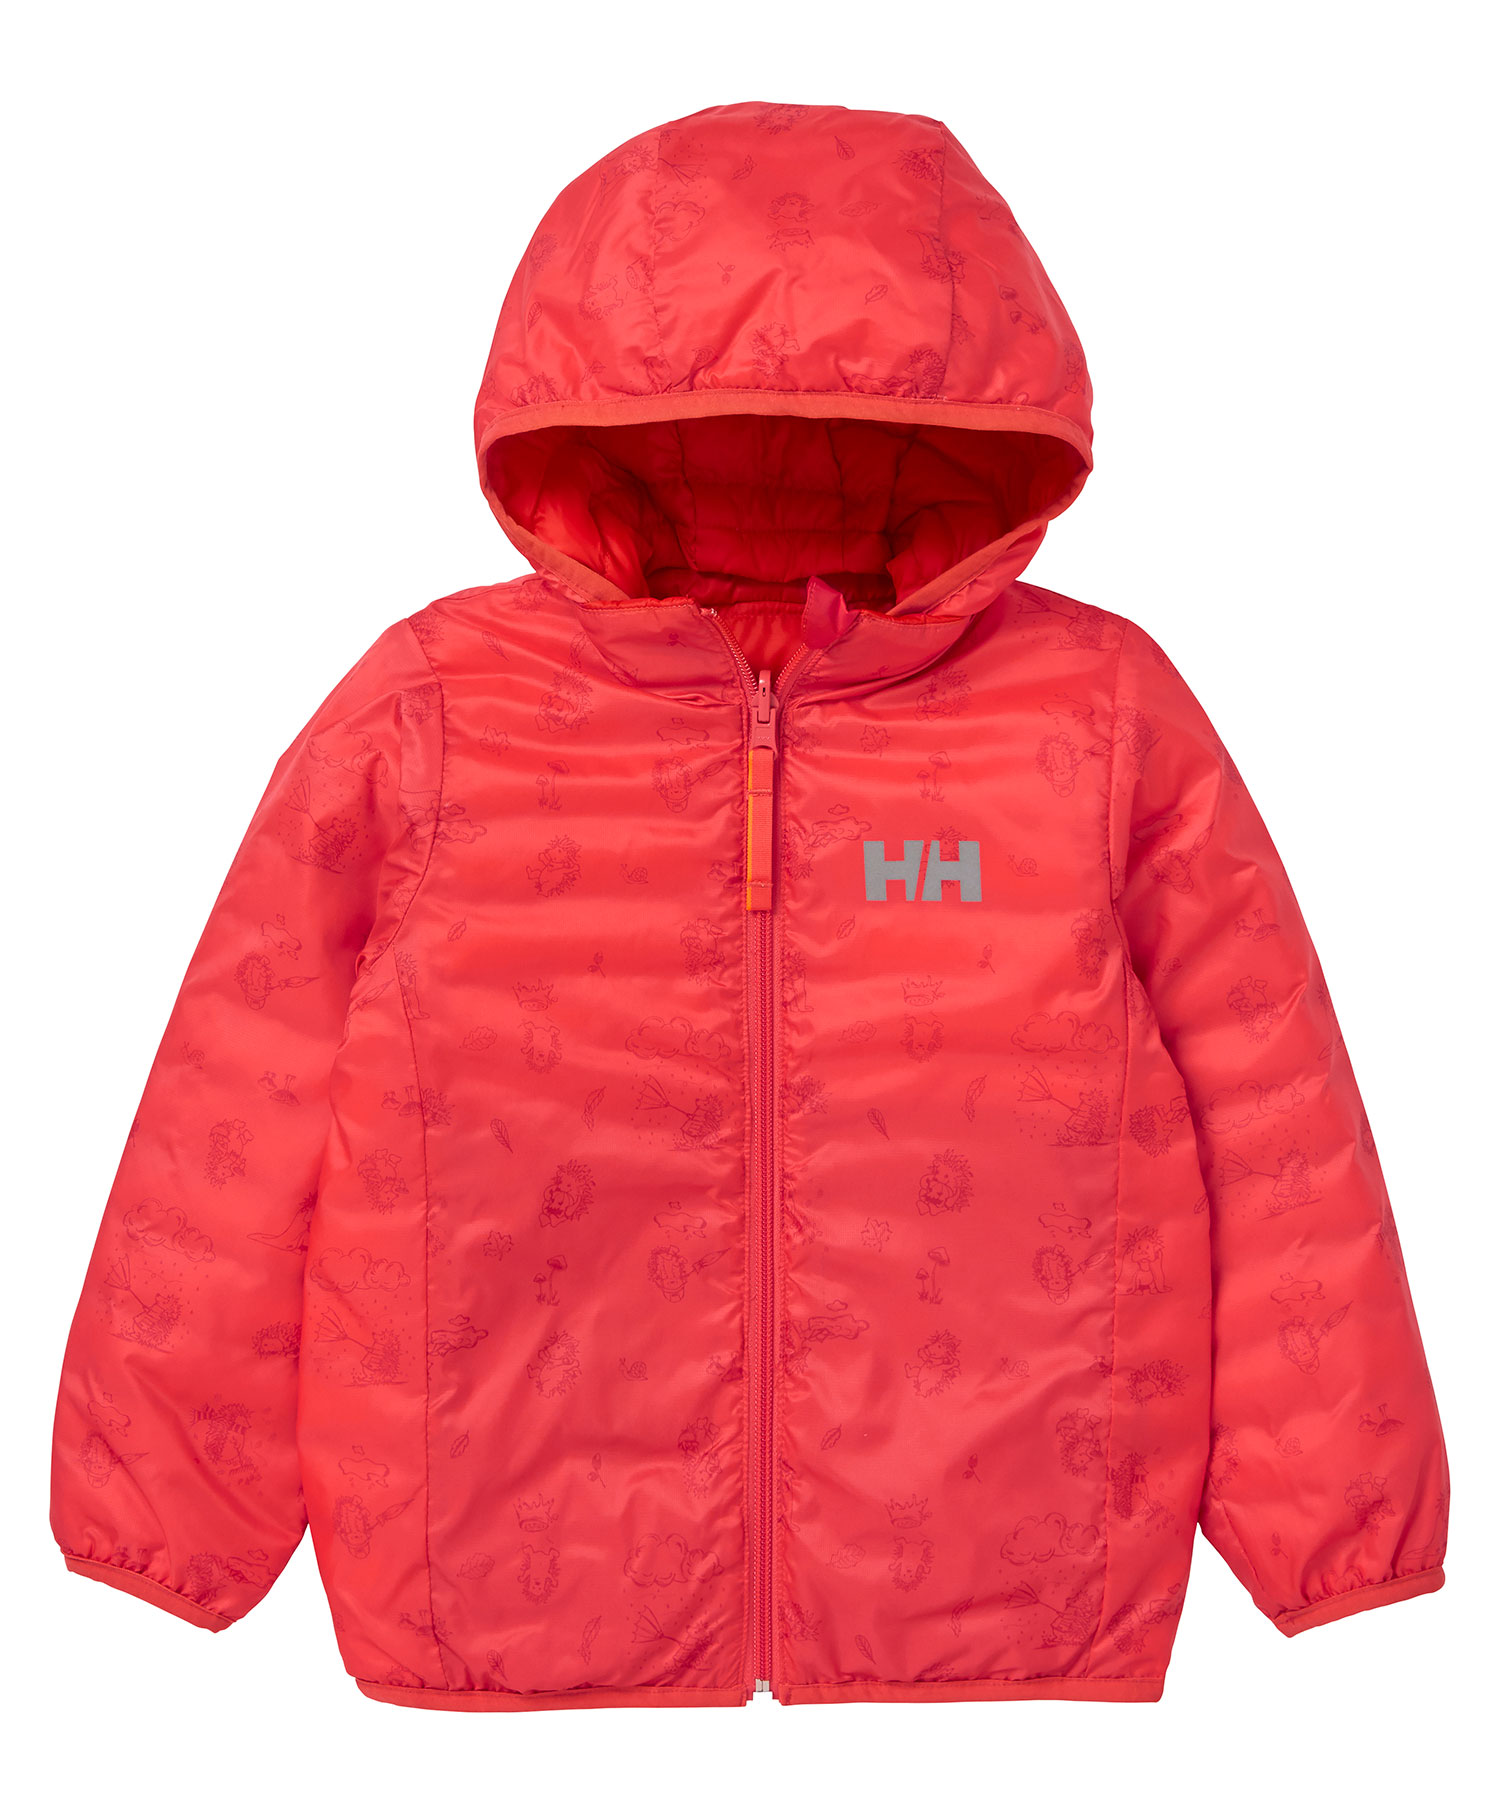 Helly Hansen storm res